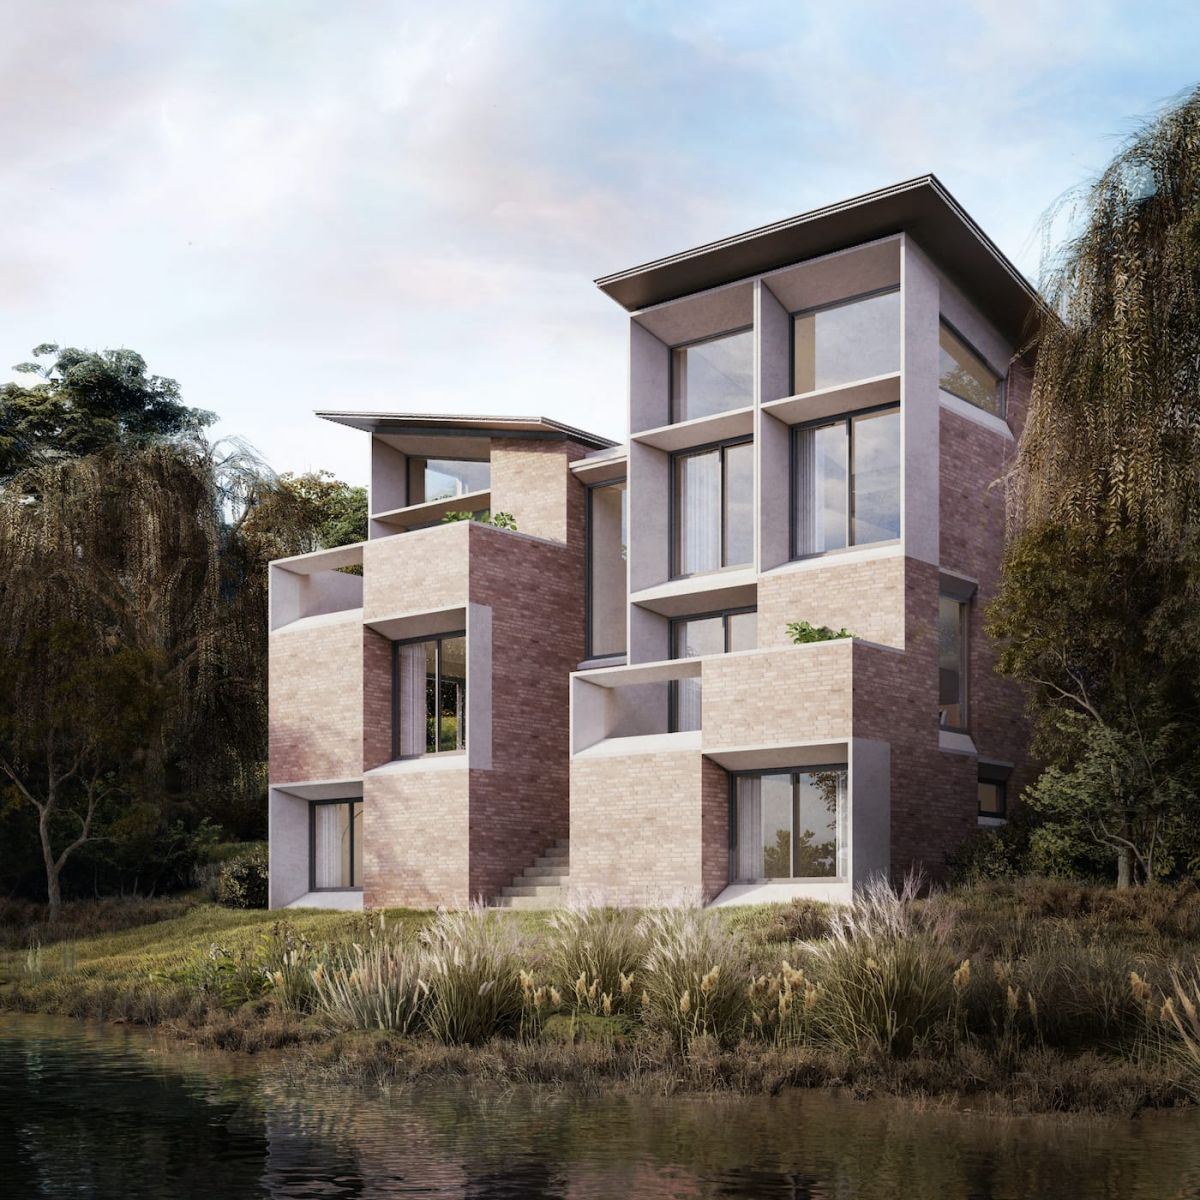 Villa Birra Project - Adrian James Architects, Oxford